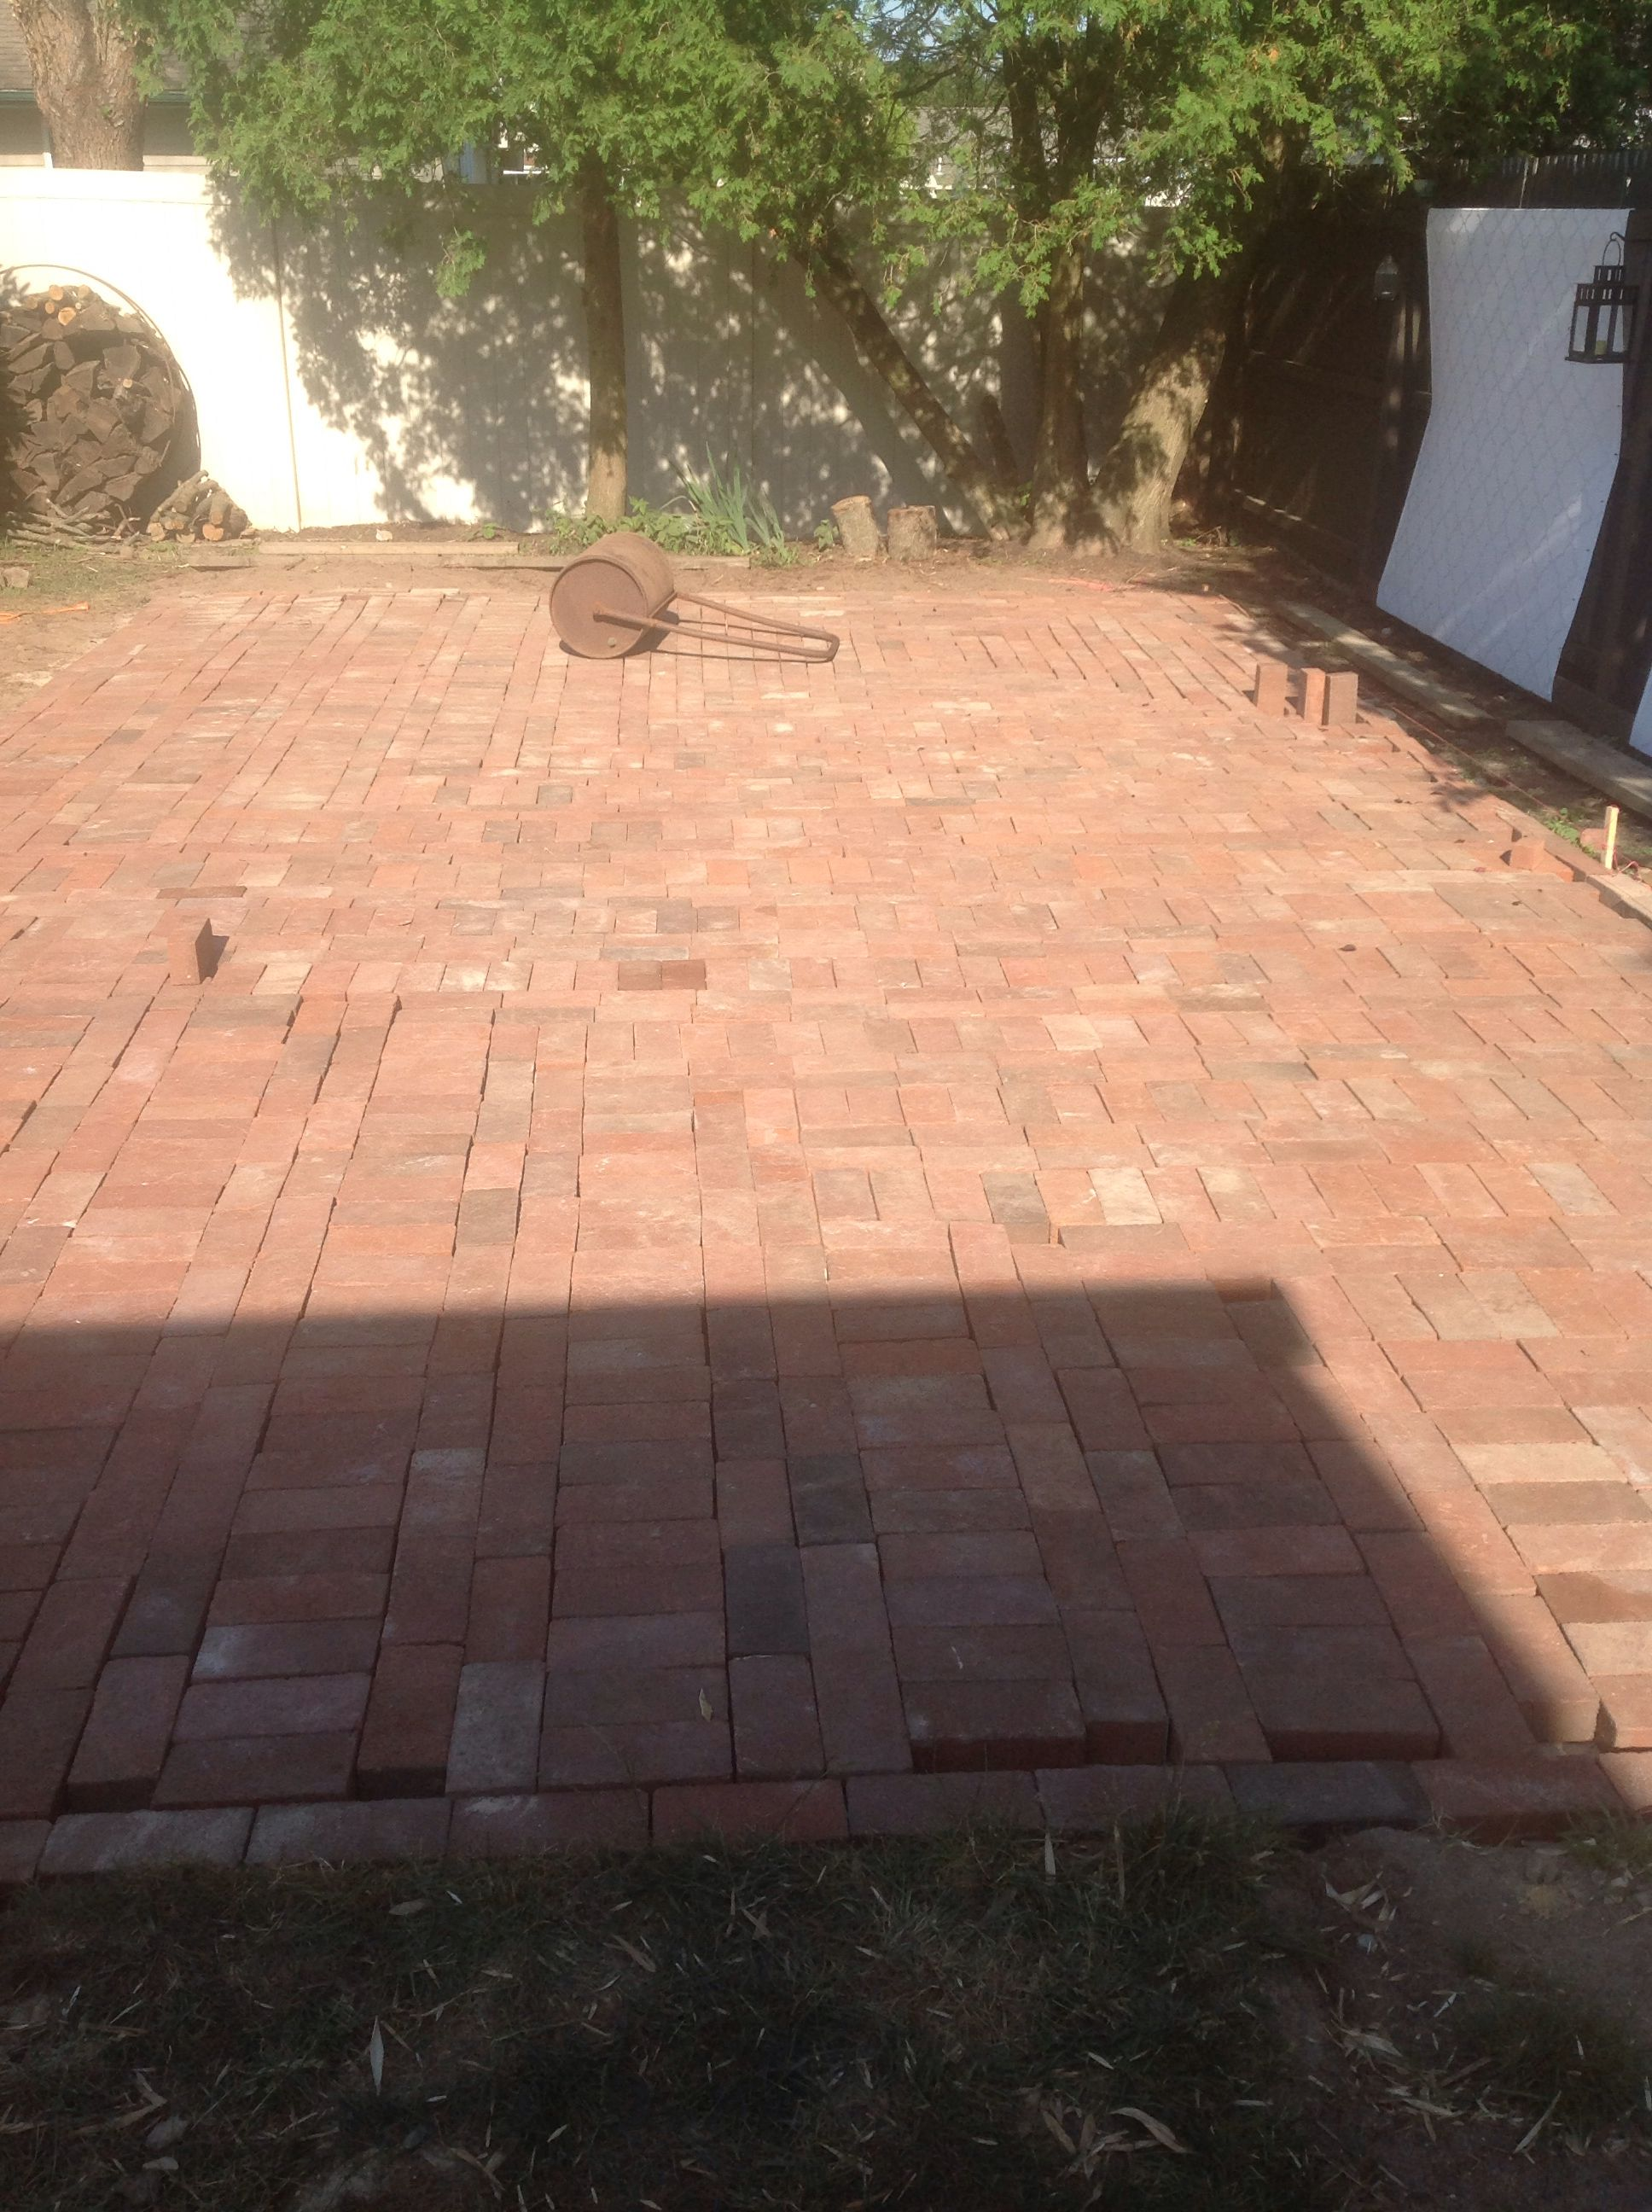 Diy 500 Square Foot Recycled Paver Patio